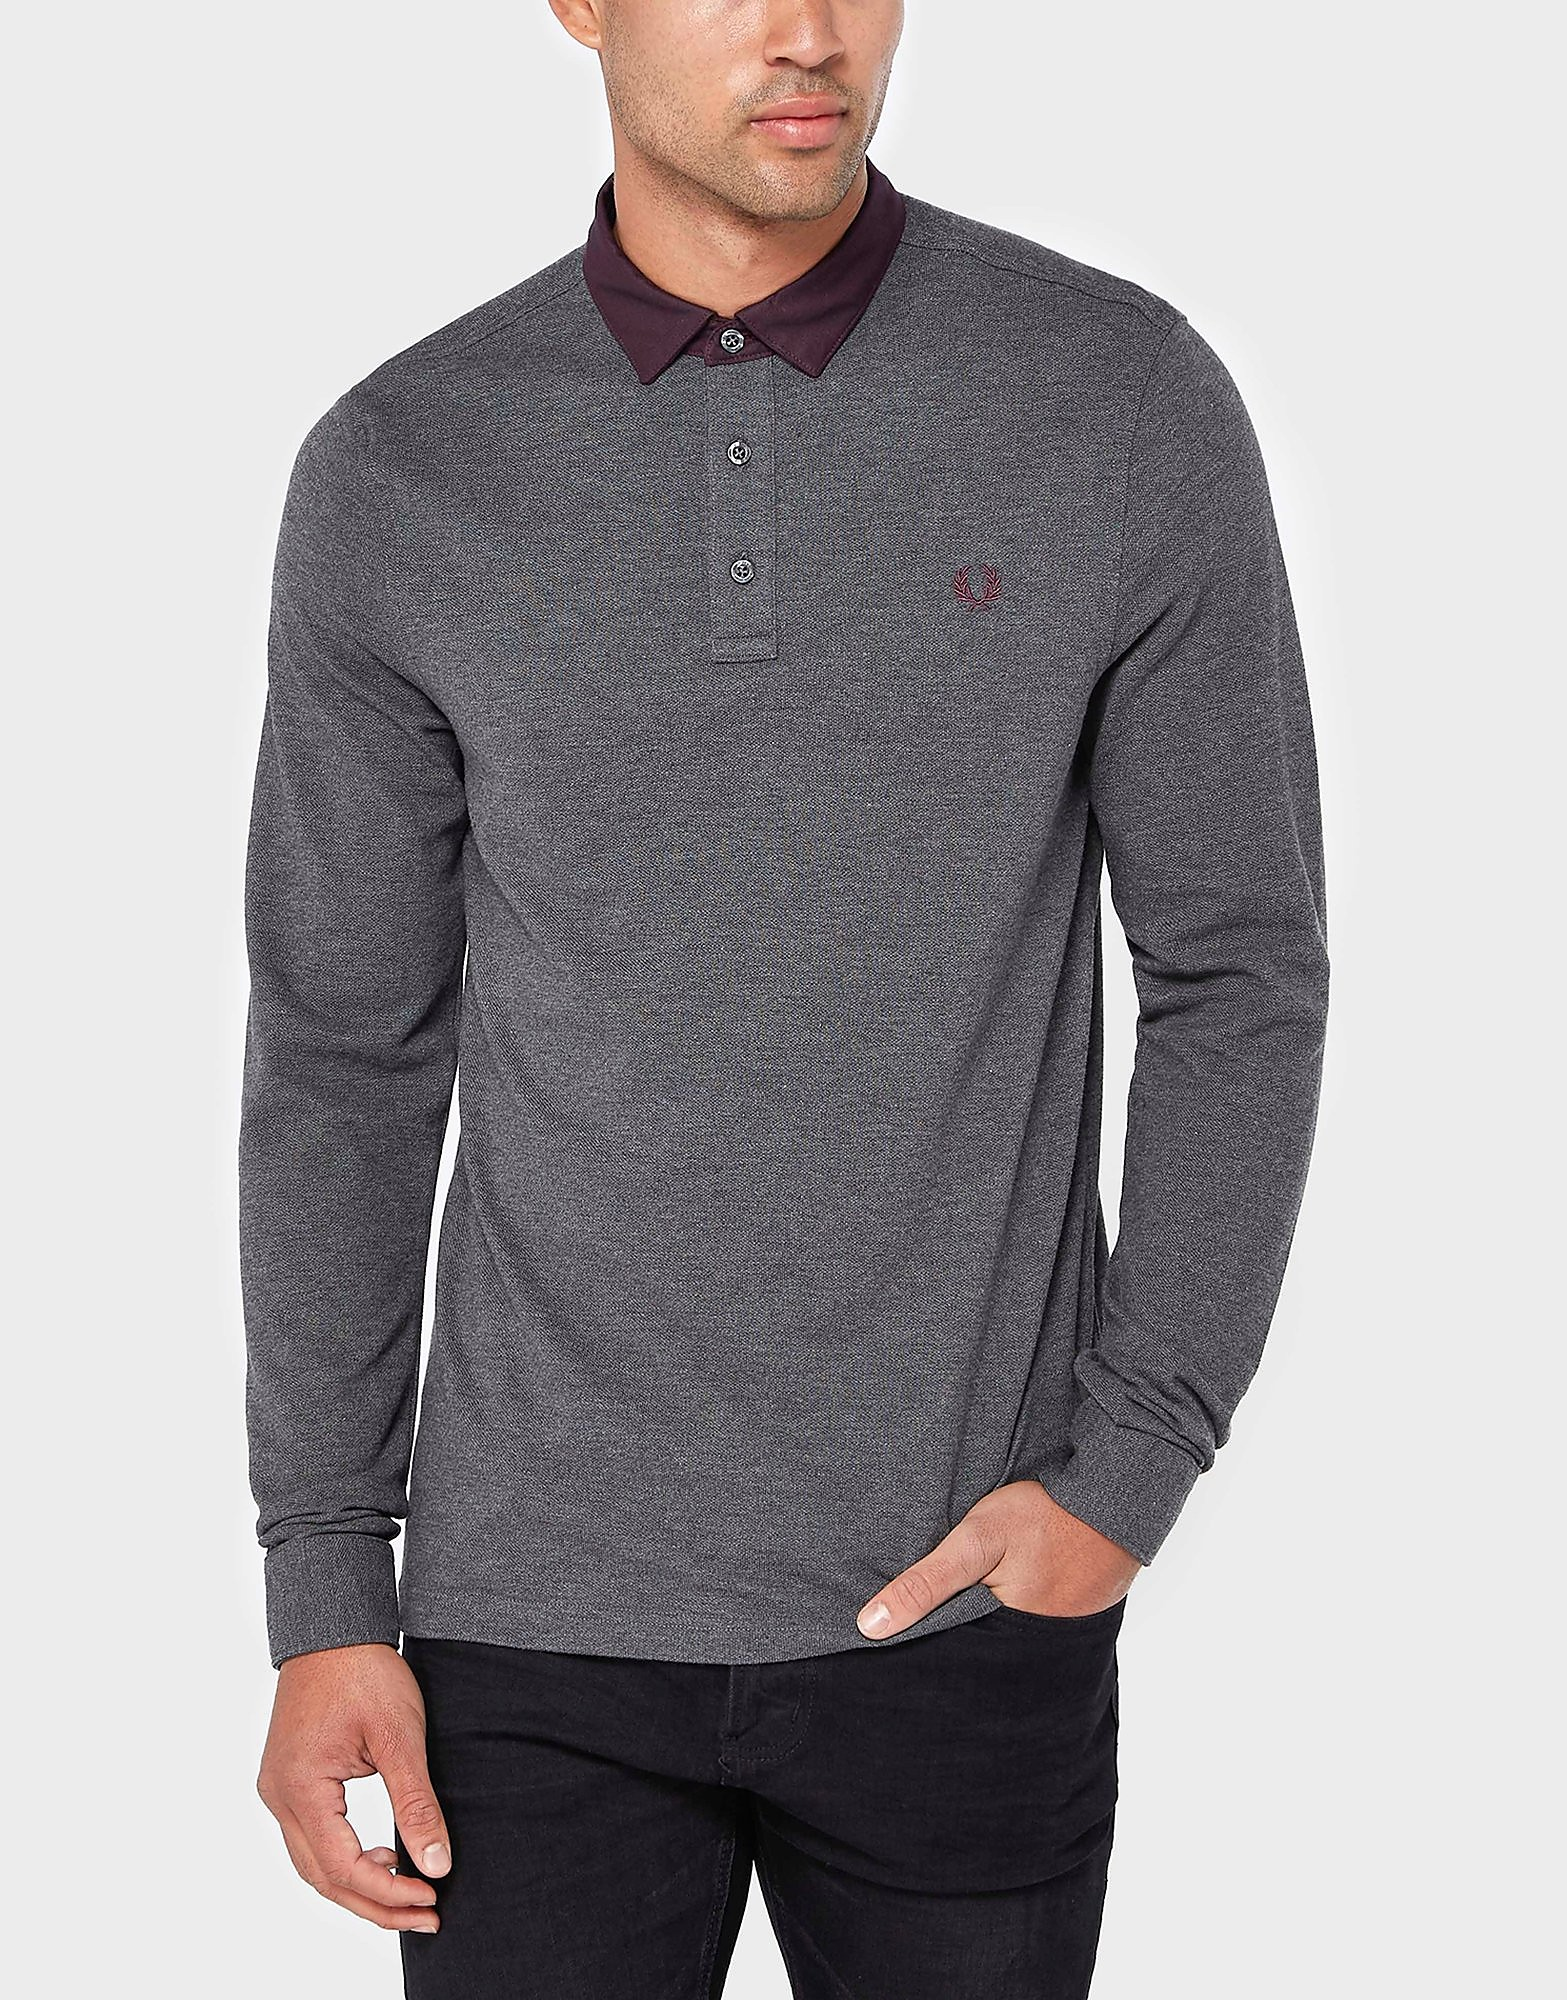 Fred Perry Long Sleeve Oxford Polo Shirt  CharcoalCharcoal CharcoalCharcoal